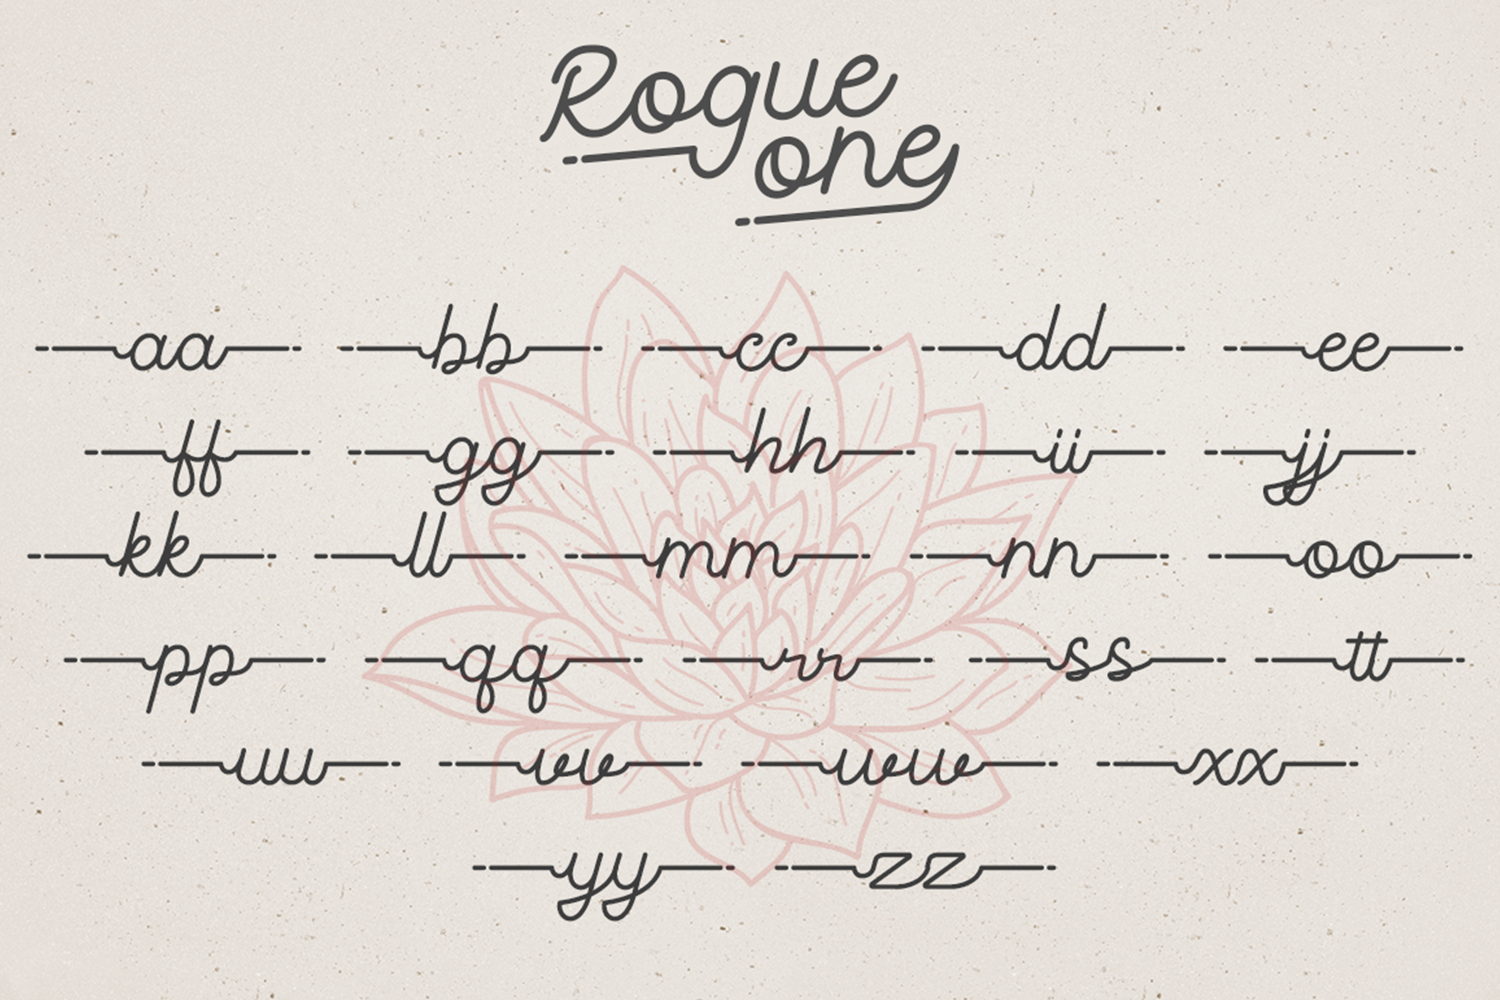 Rogue one example image 6